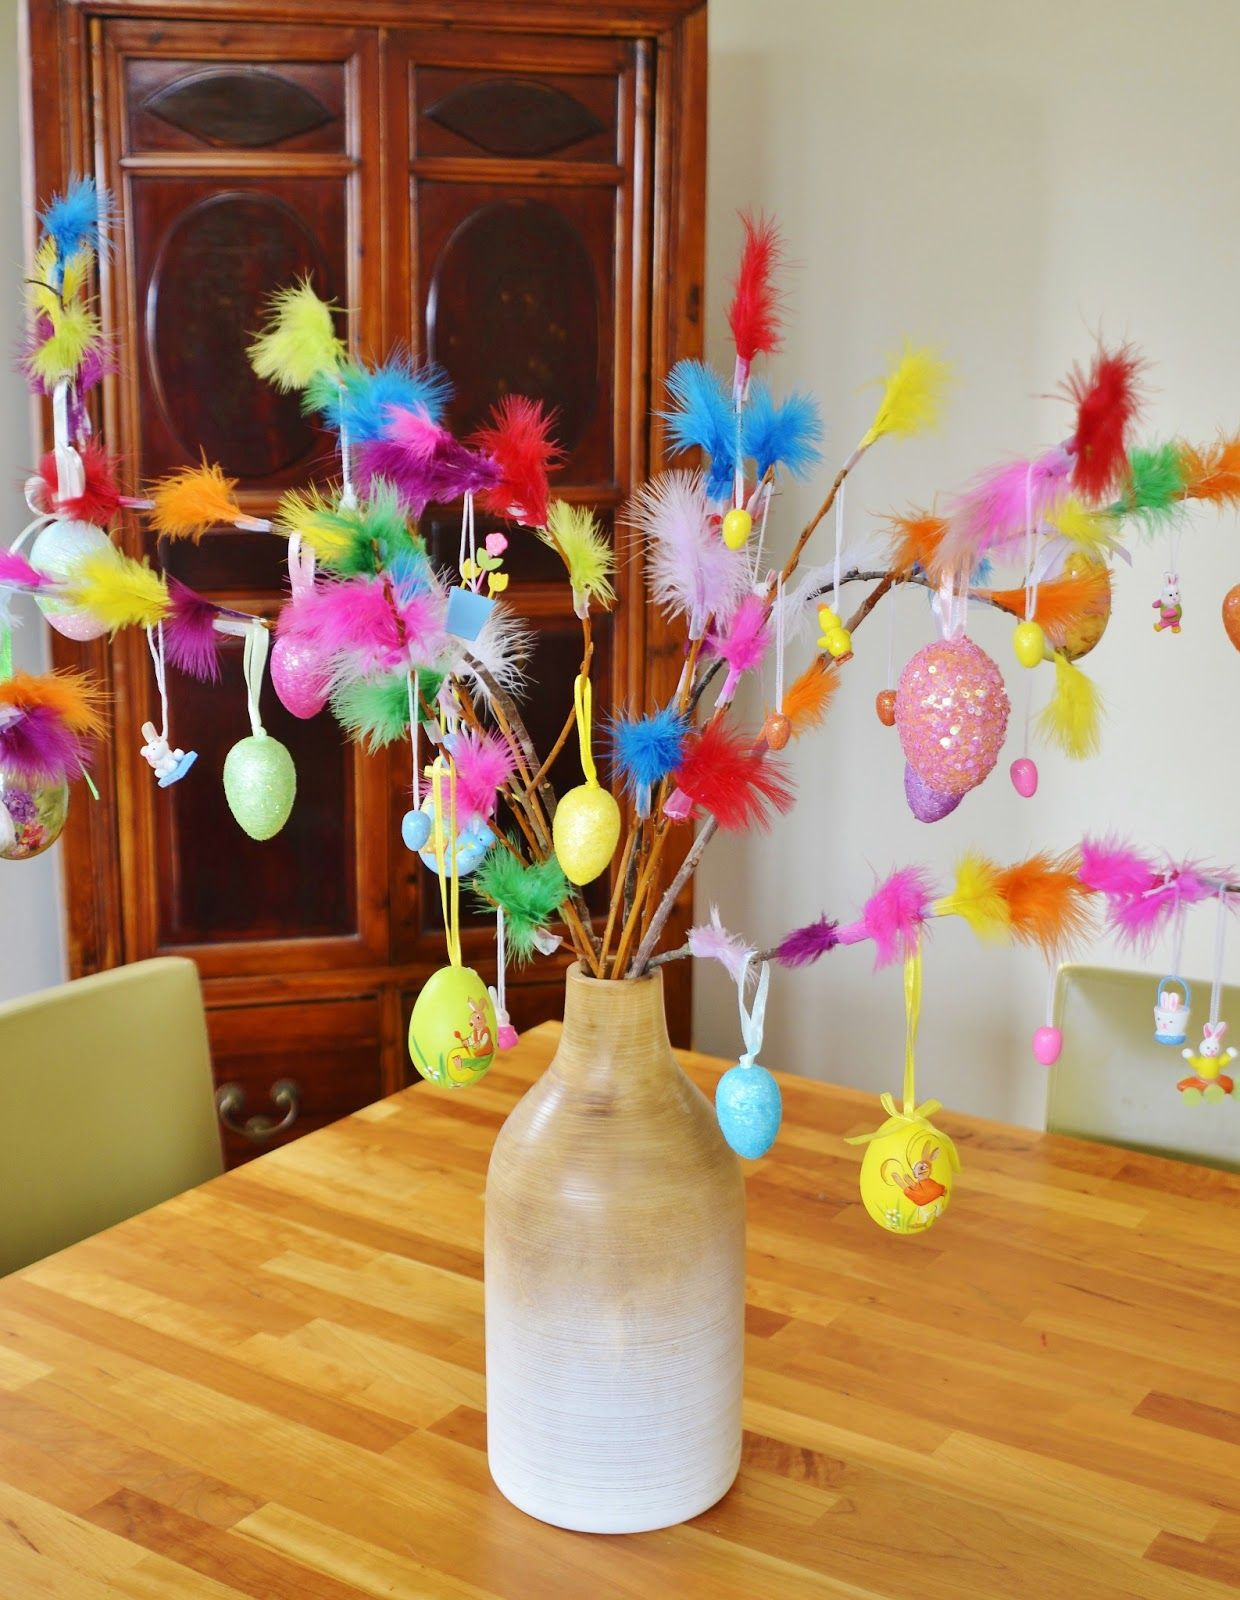 Swedish easter tradition paskris birch twigs decorated with swedish easter tradition paskris birch twigs decorated with colorful feathers diy negle Image collections